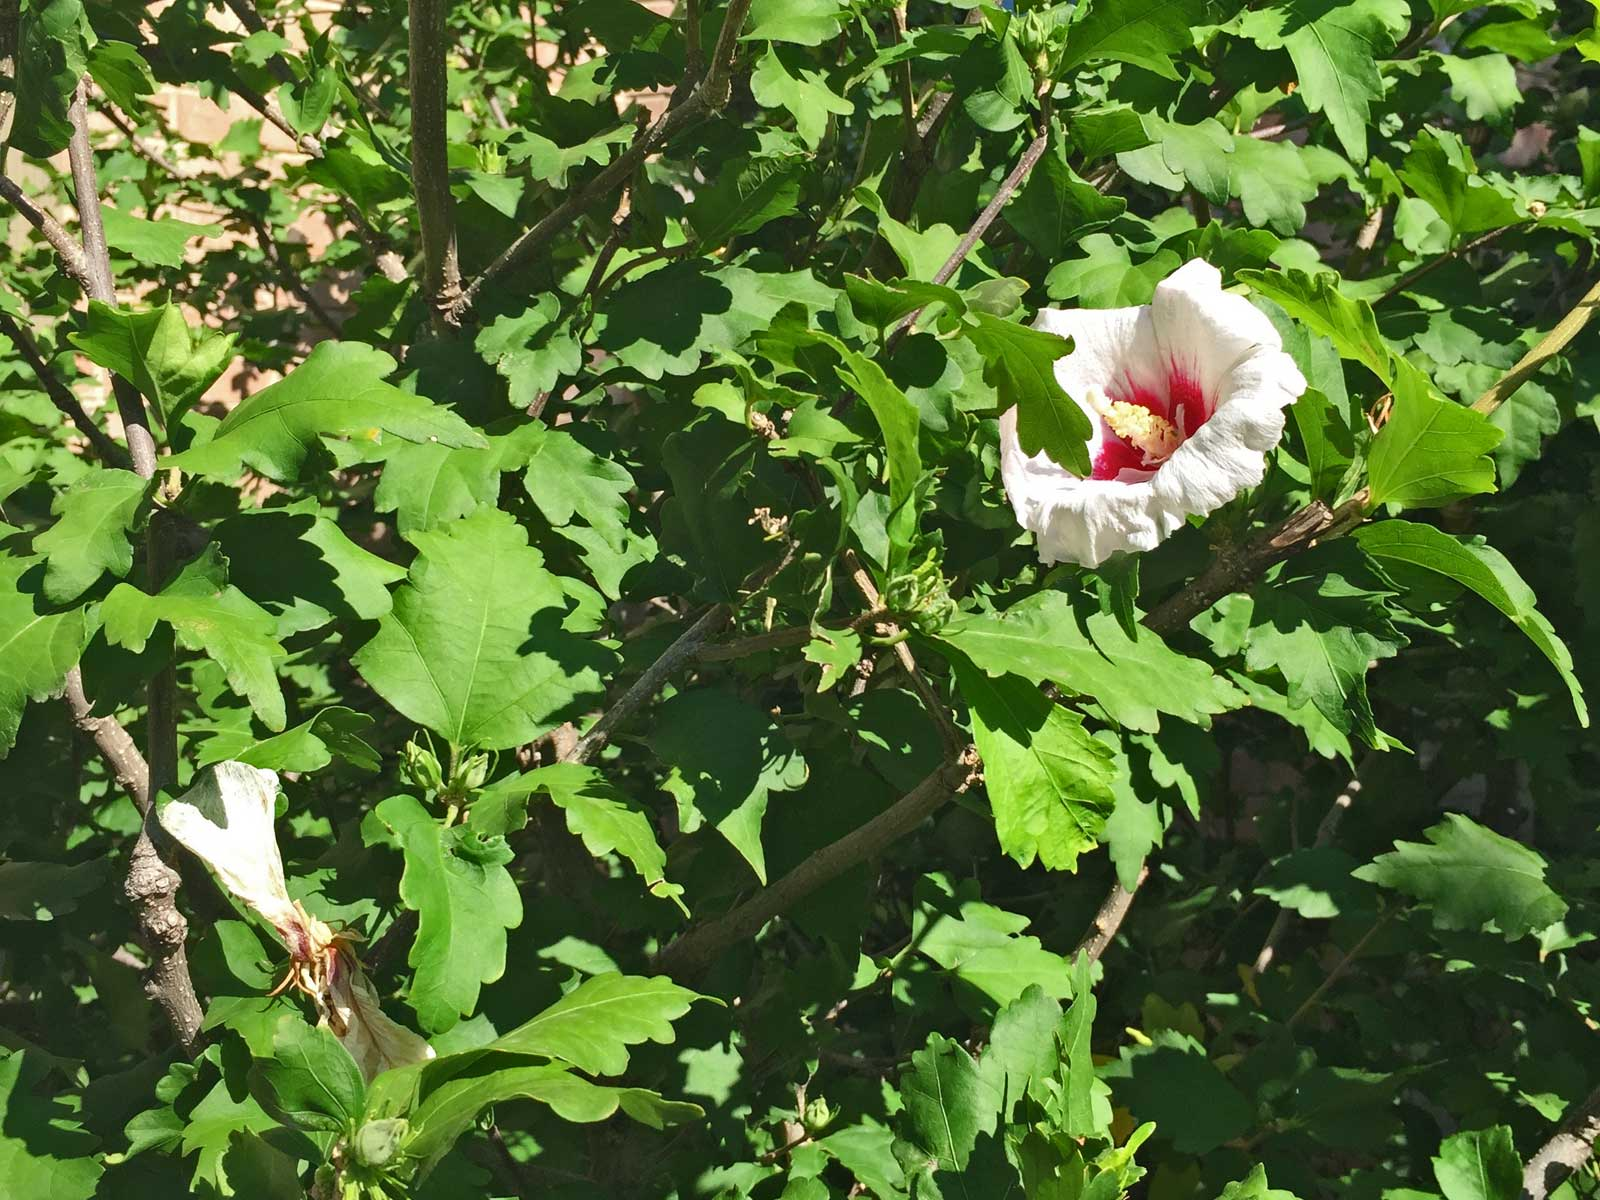 althea - rose of sharon